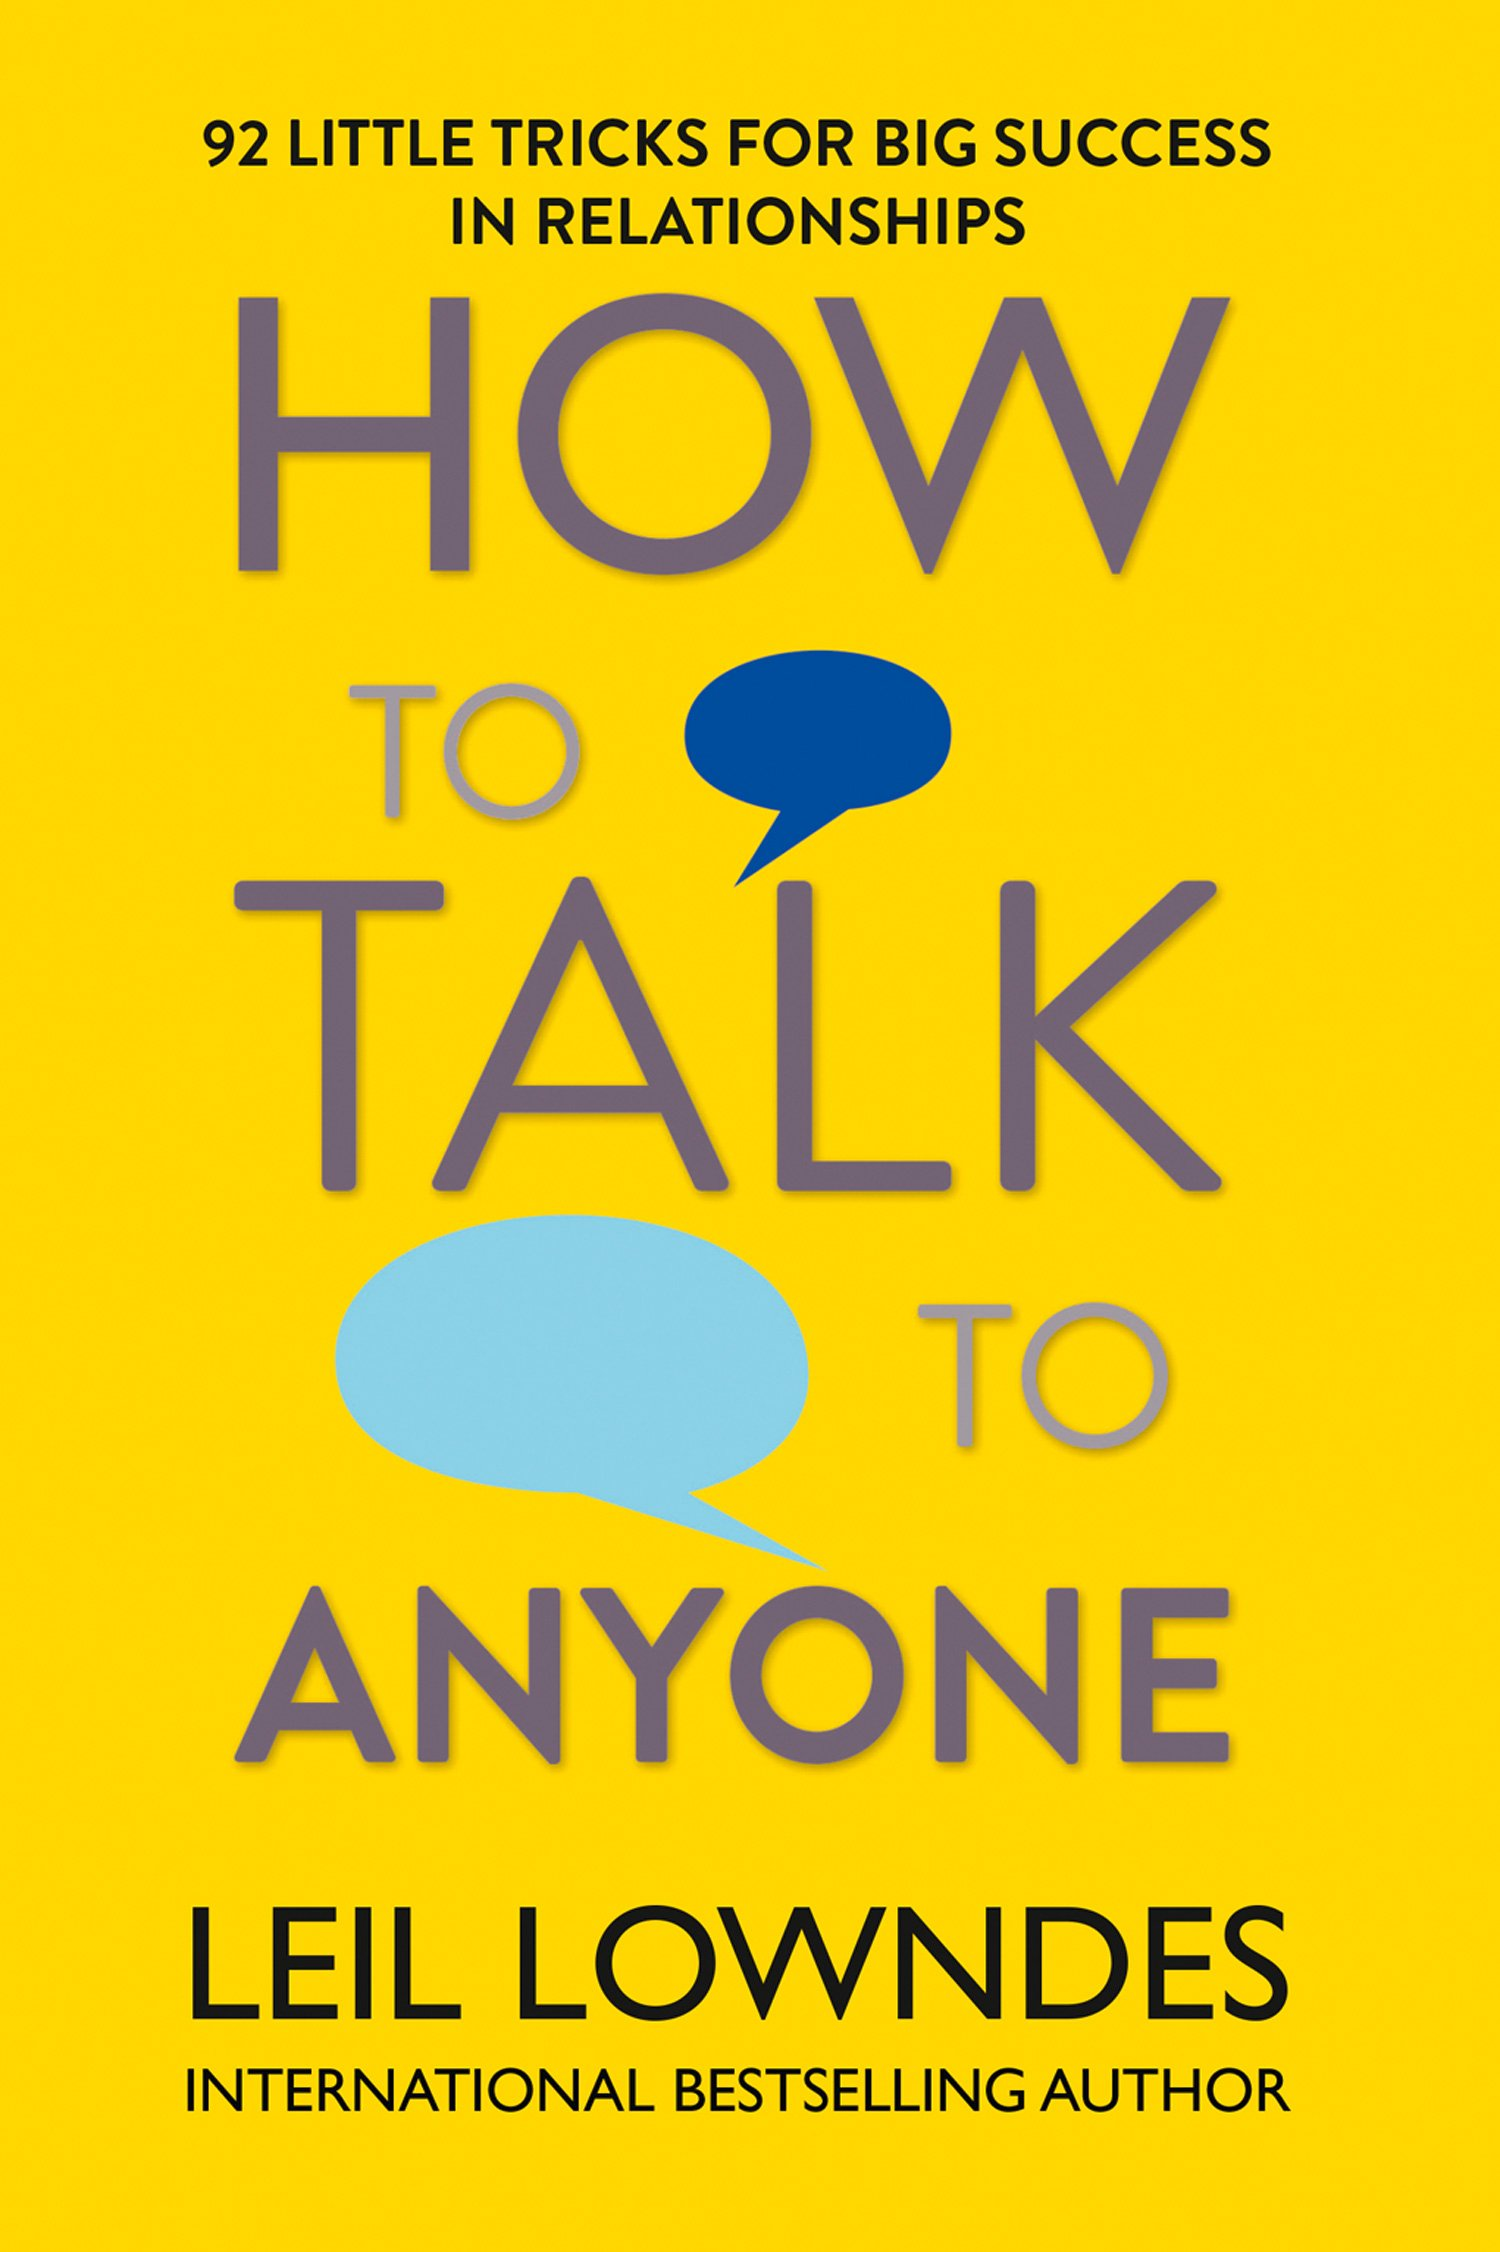 How To Talk To Anyone  92 Little Tricks For Big Success In Relationships  English Edition